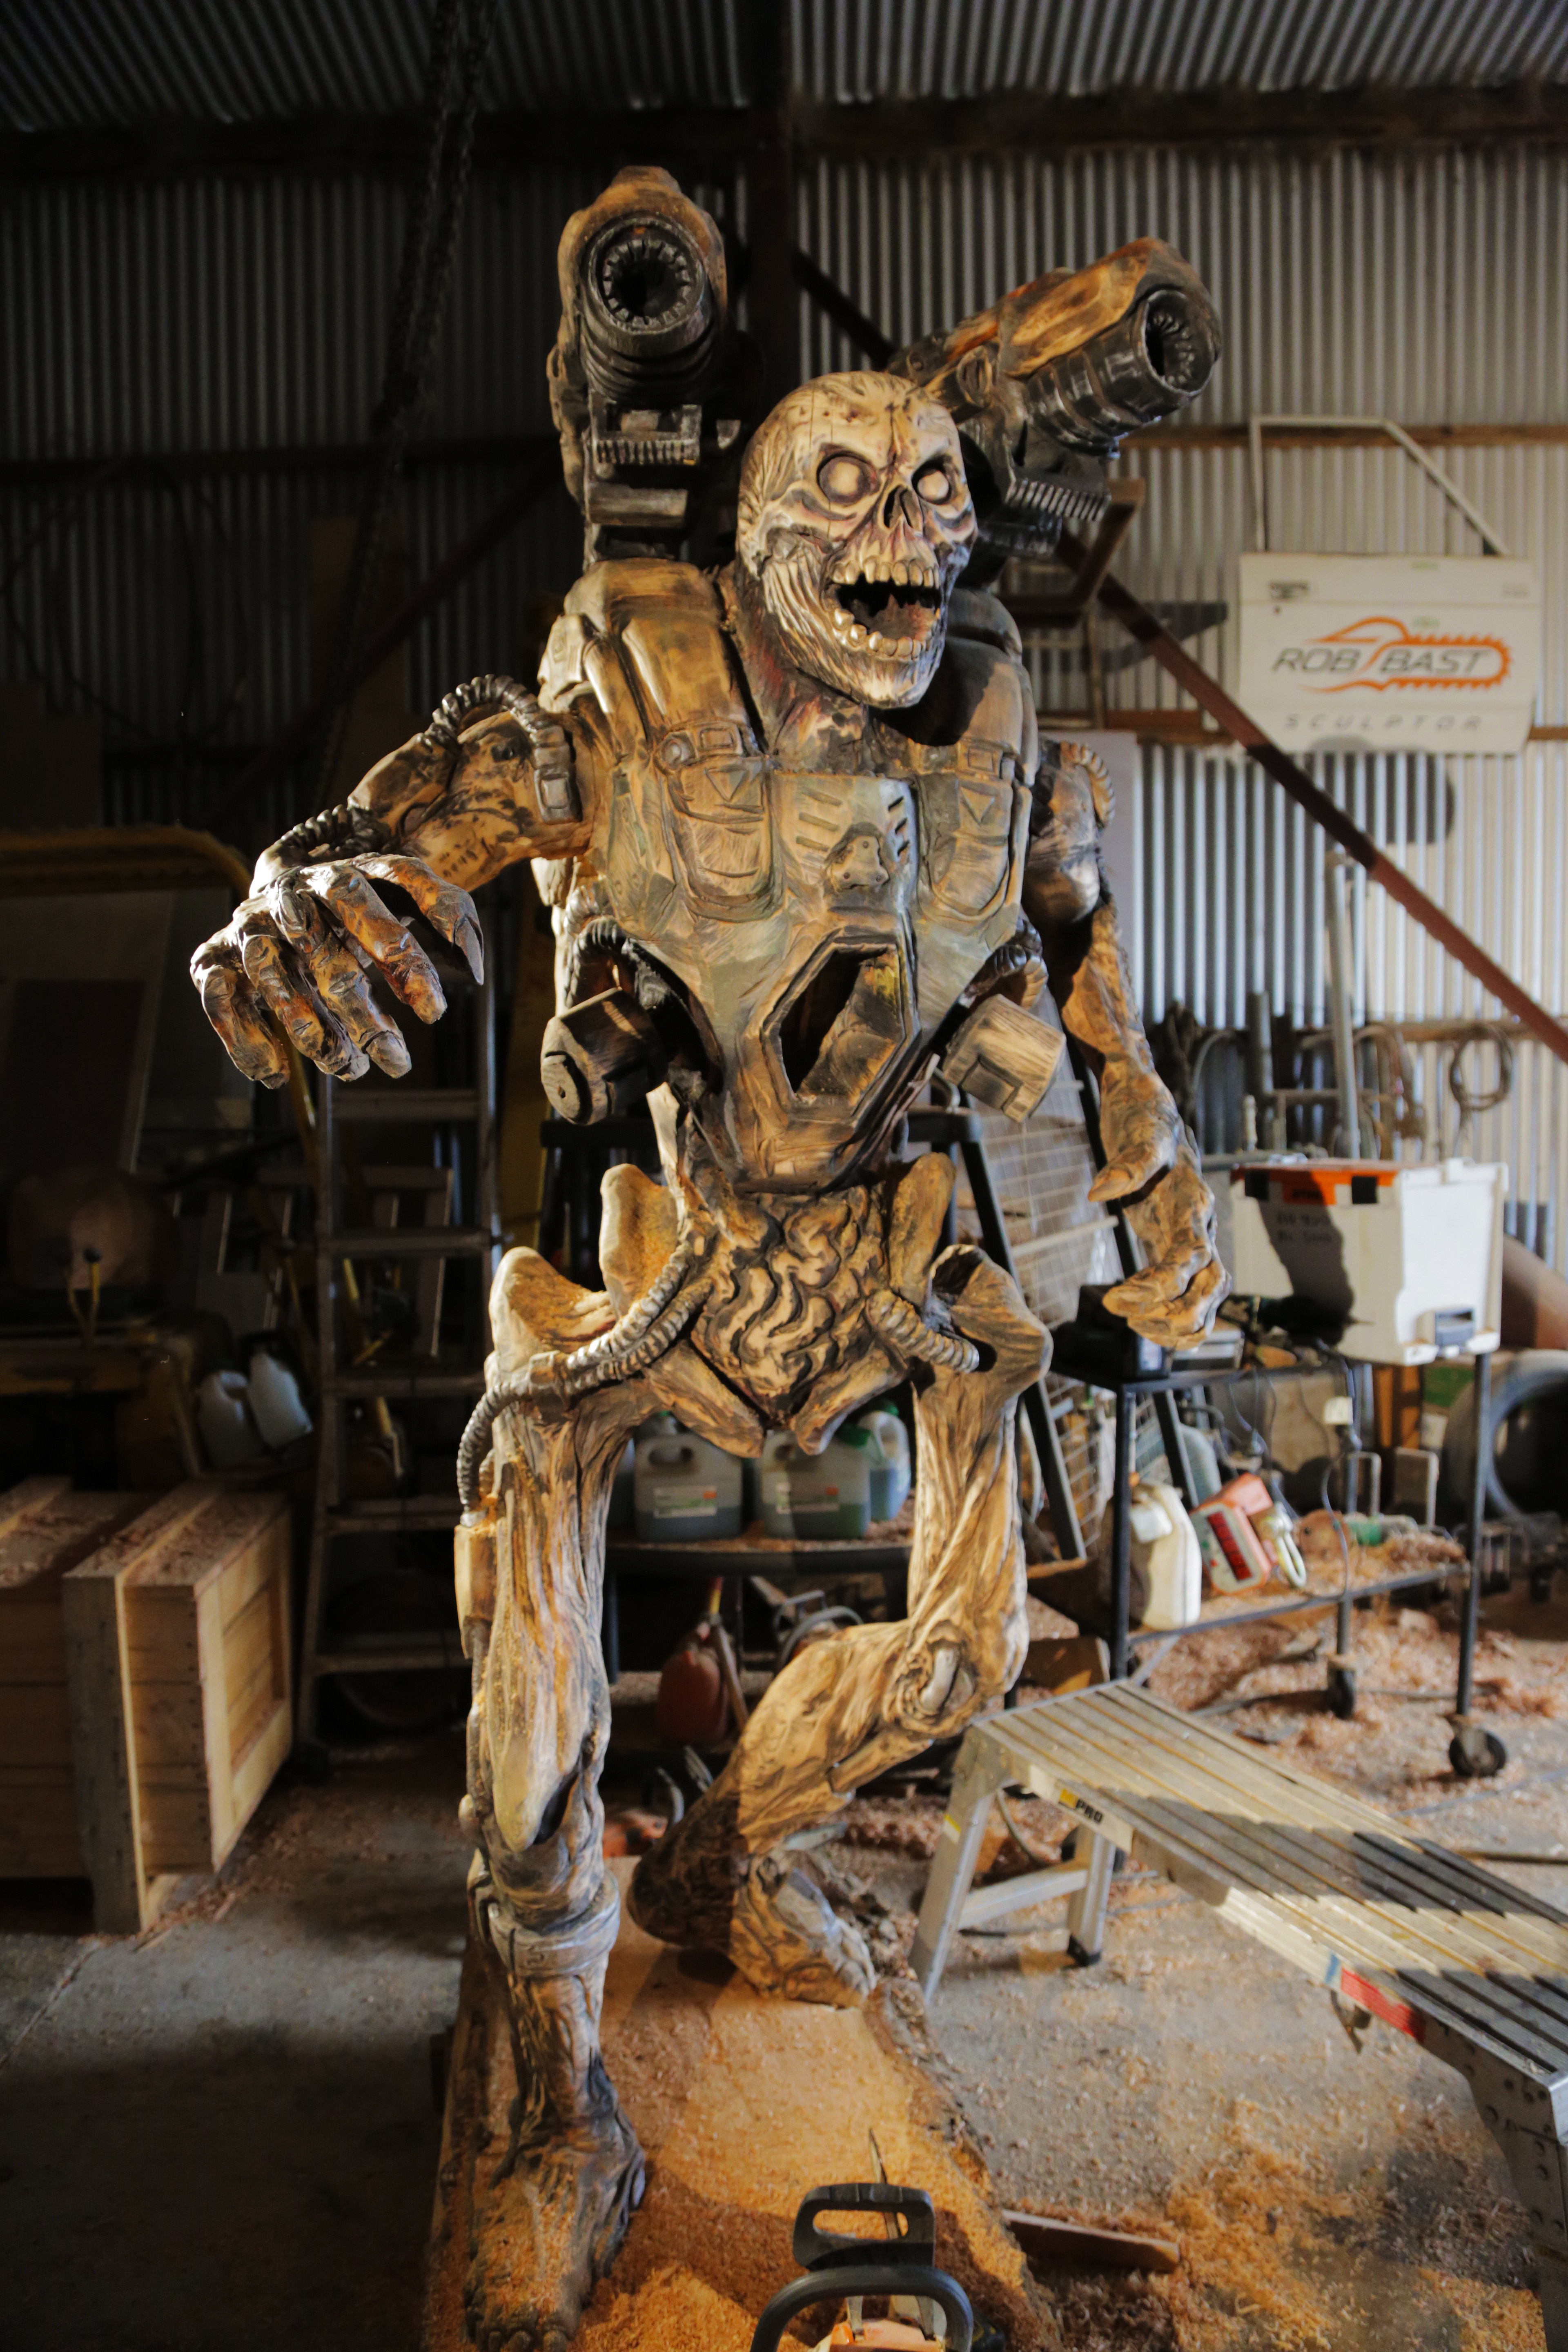 Doom chainsaw sculpture to be exhibited at acmi